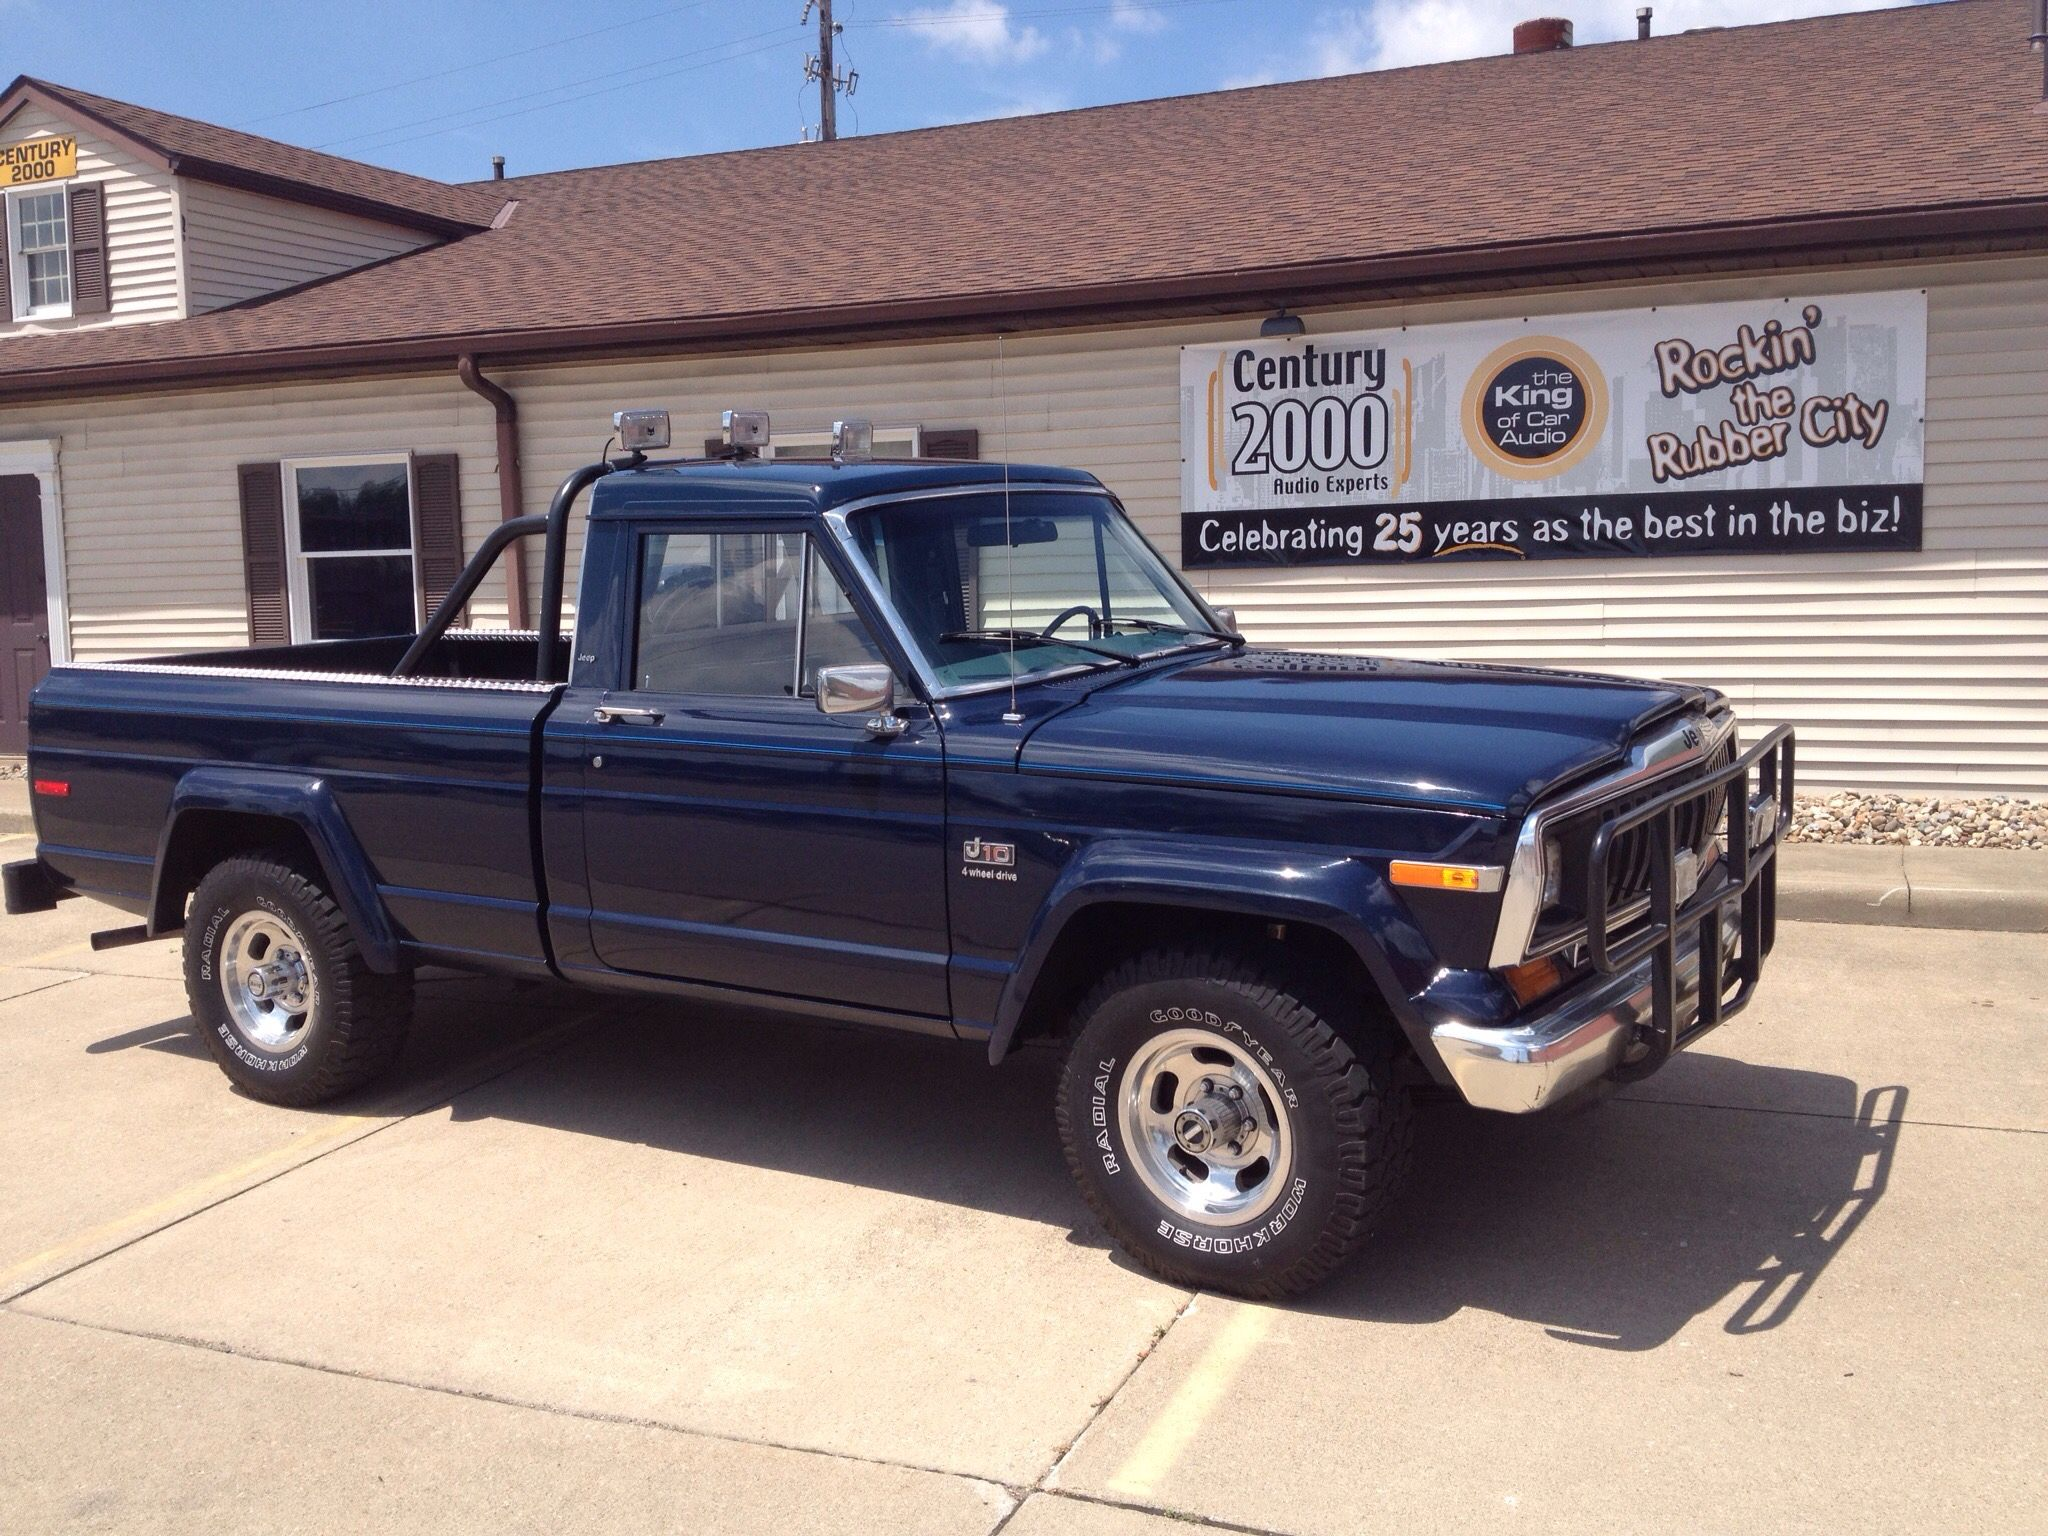 1983 Blue Jeep J10 Pickup Truck Jeep Truck Jeep Pickup Willys Jeep